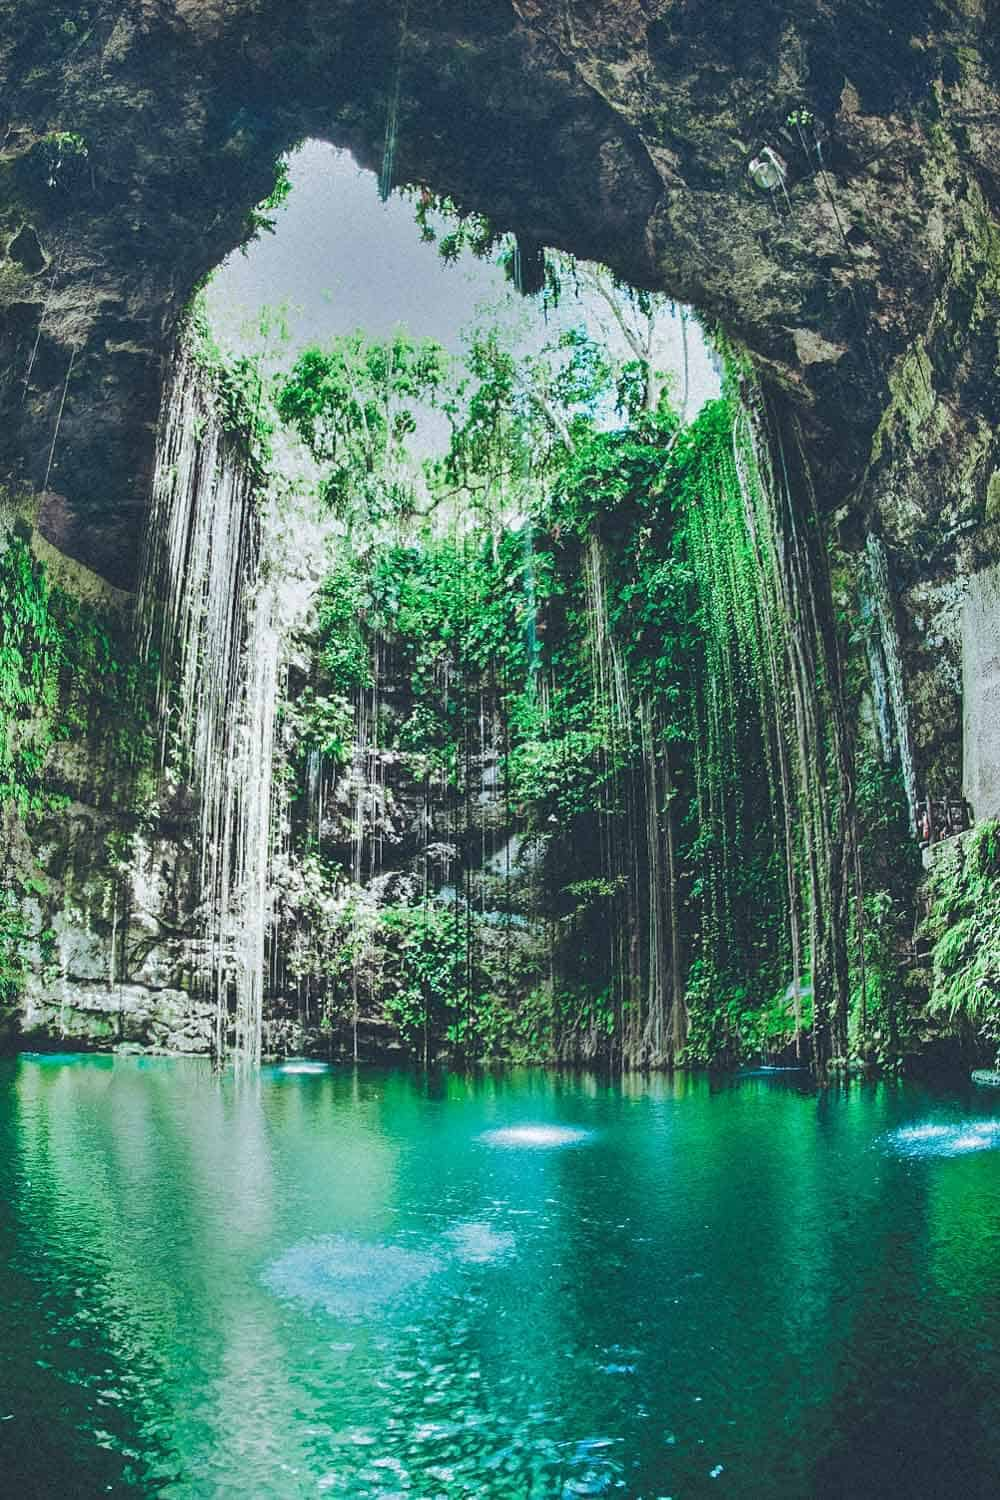 Cenote Ik Kil (The most crowded Cenote in Mexico)